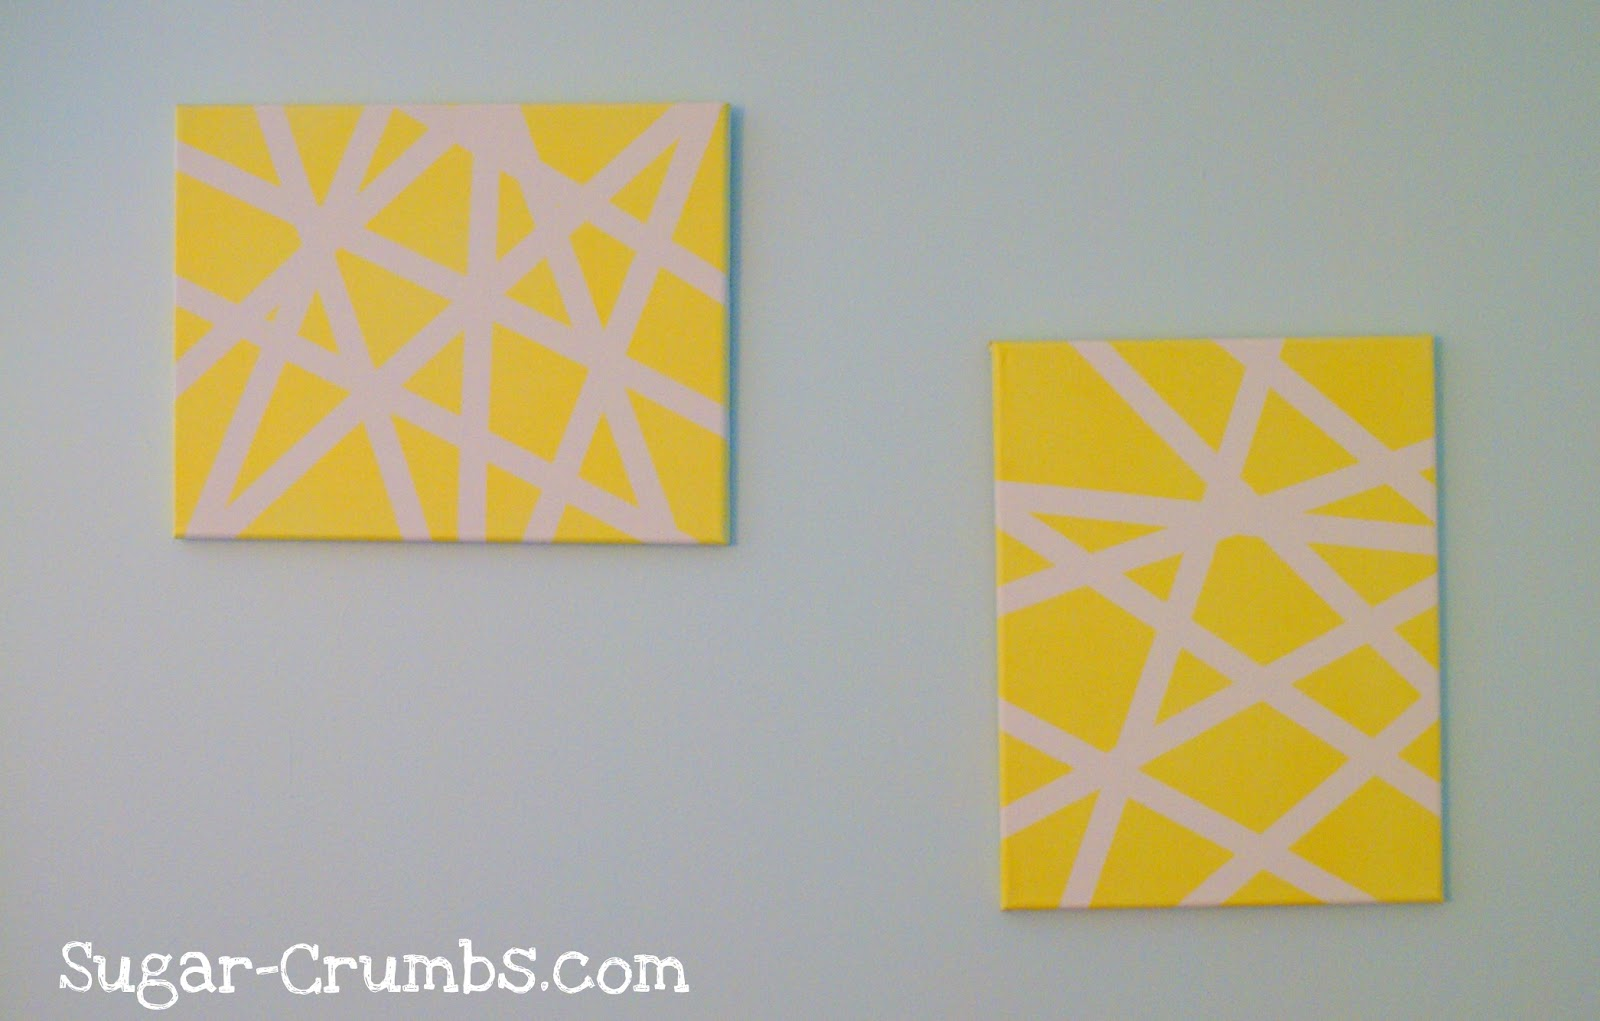 Sugar Crumbs: Pinterest Pick: Masking Tape Wall Art